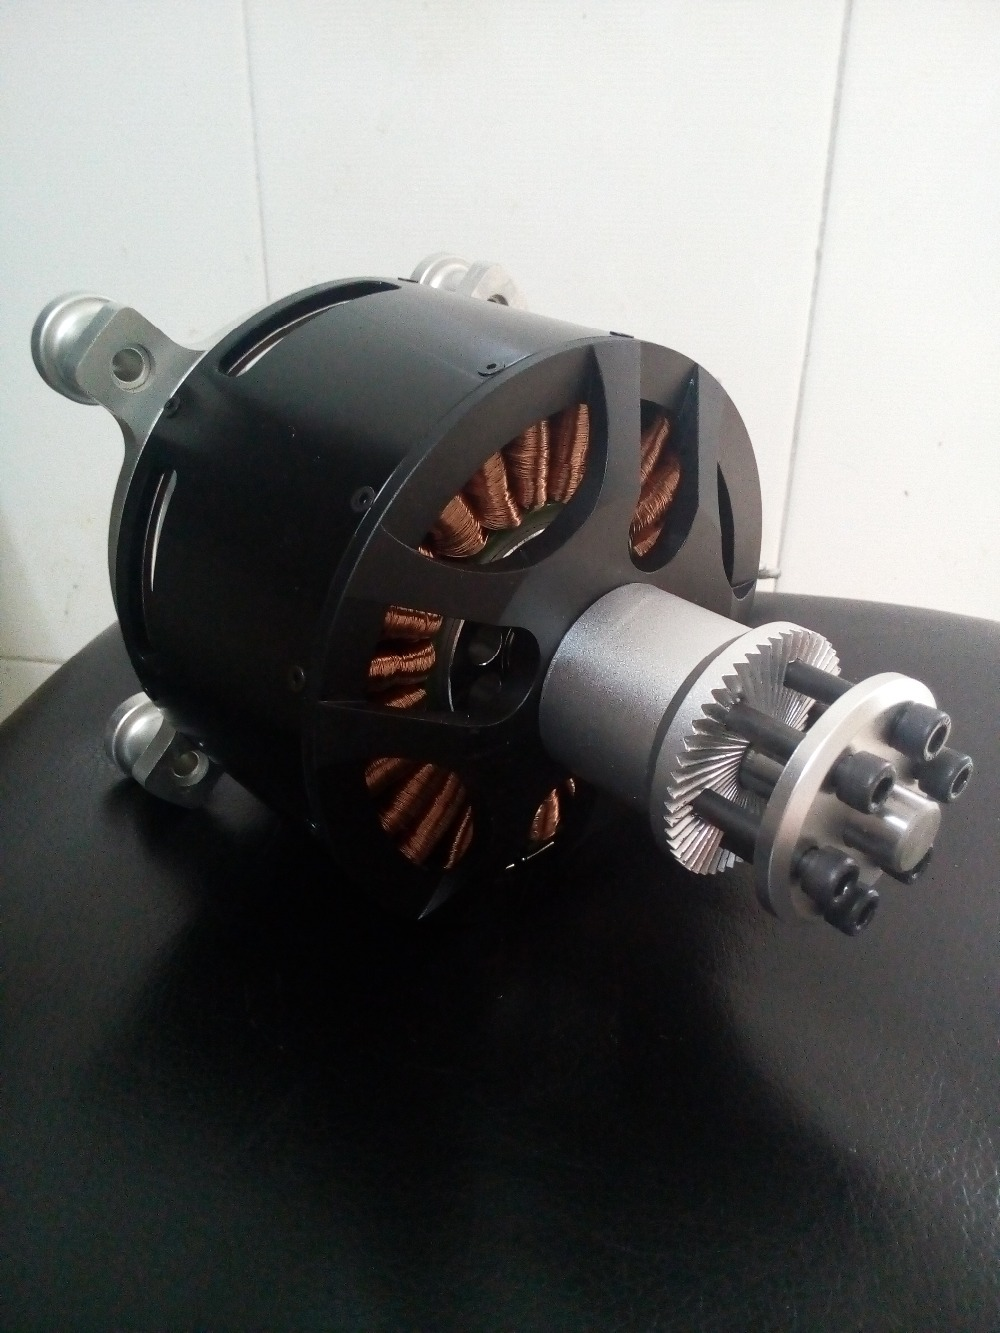 S12090 KV130 Outrunner Brushless motor / brushless world's largest size Suitable use UAV